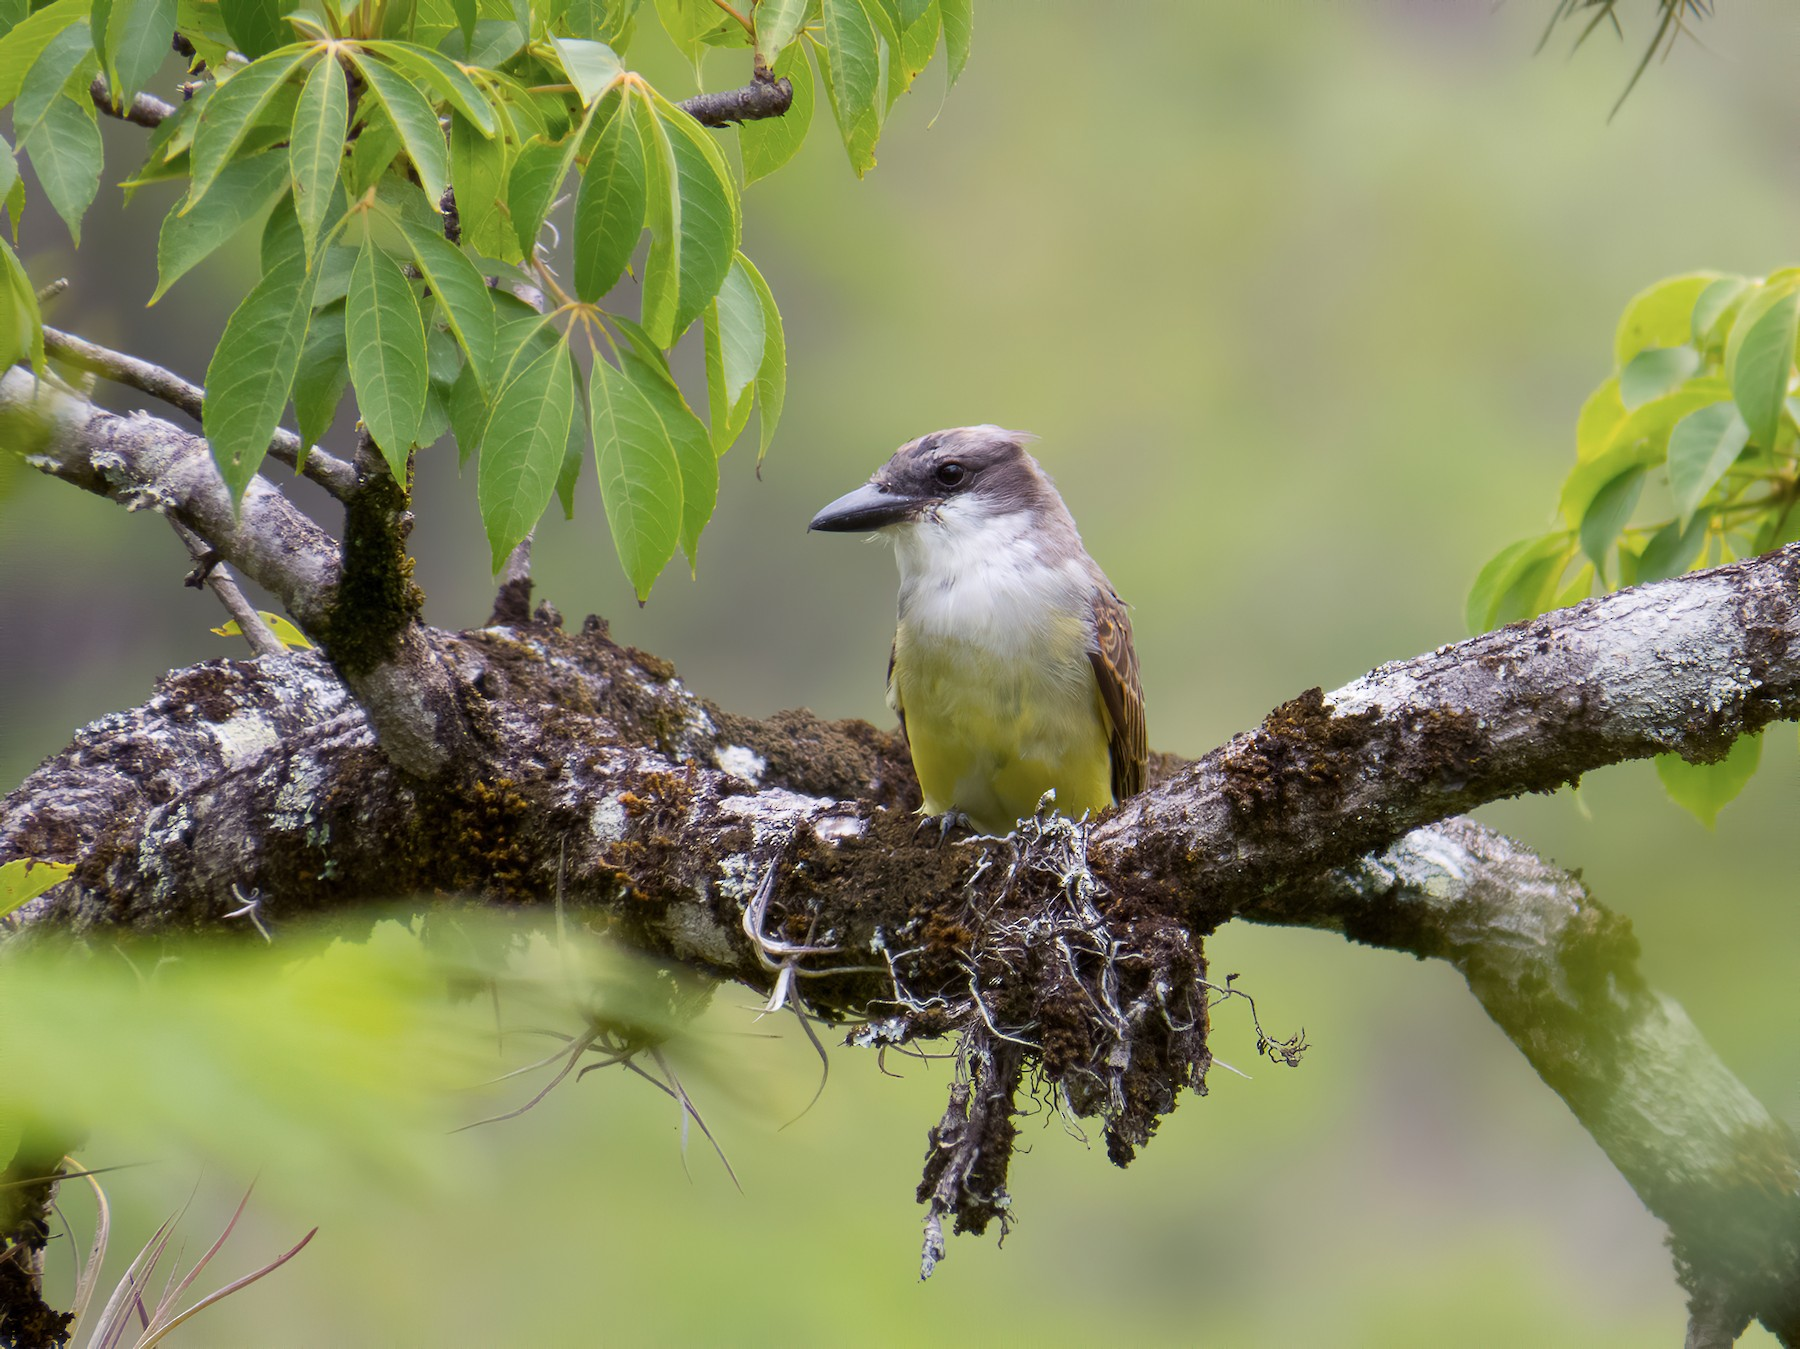 Thick-billed Kingbird - Aquiles Brinco